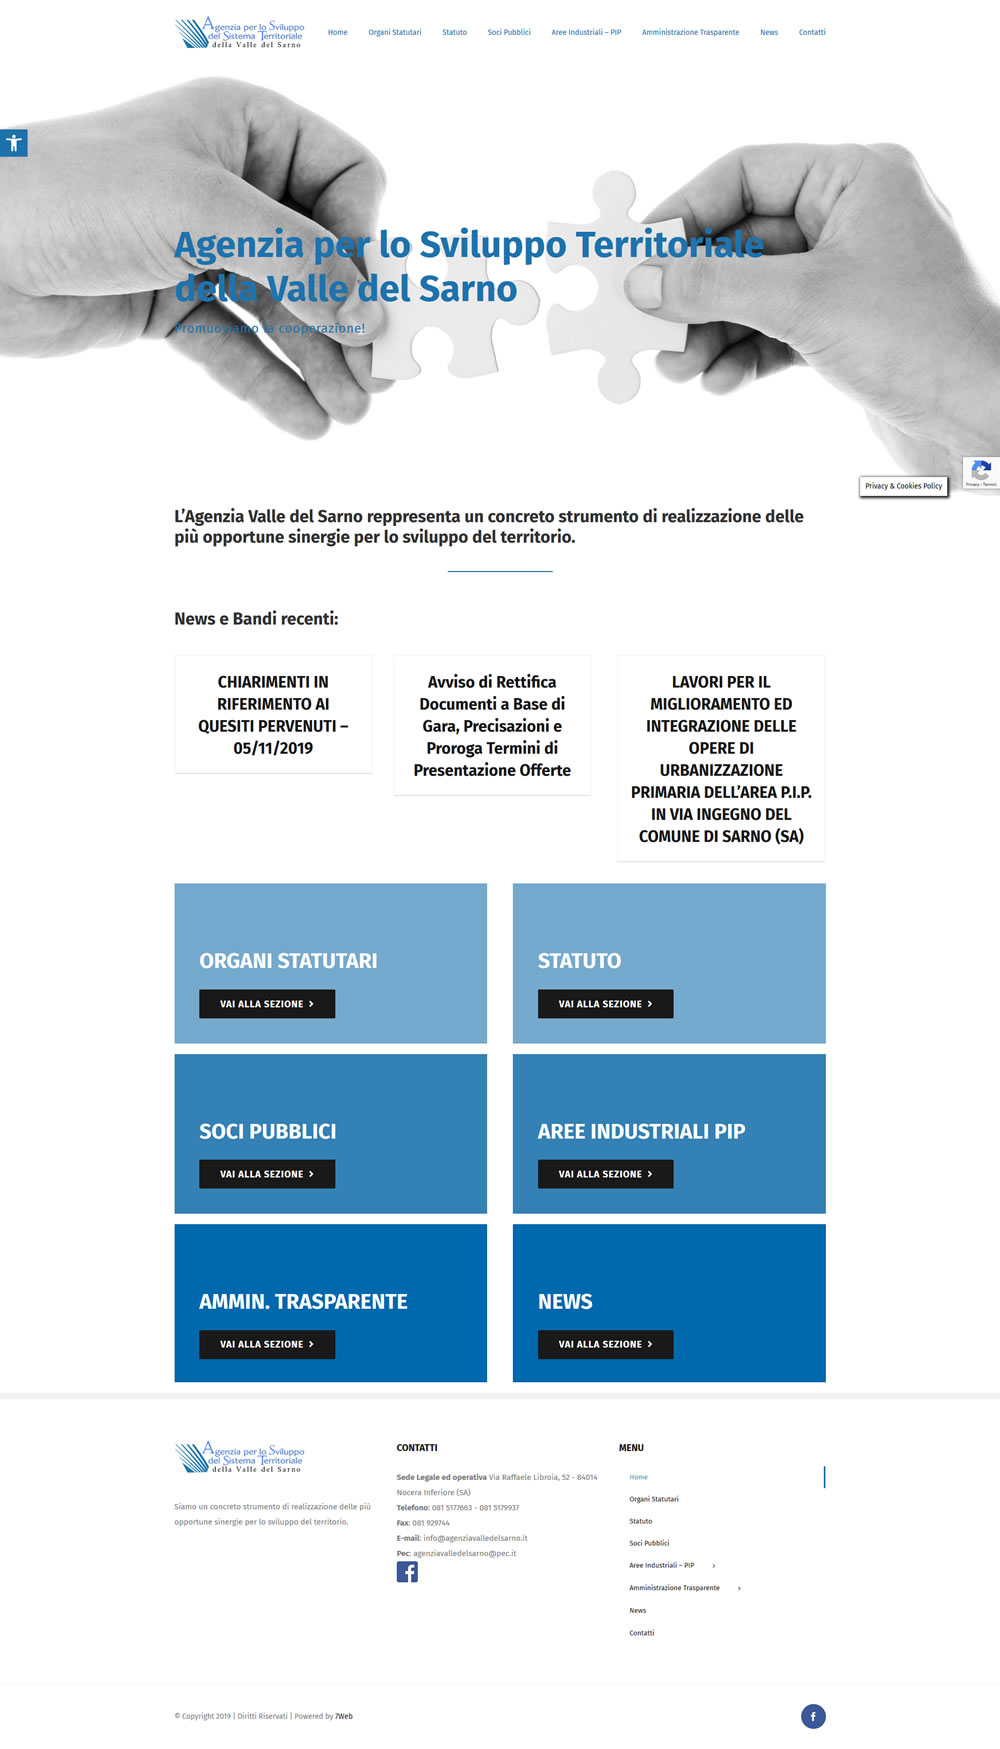 Agenzia Valle del Sarno - Setteweb.it Portfolio Sito Web WordPress 7Web-2019